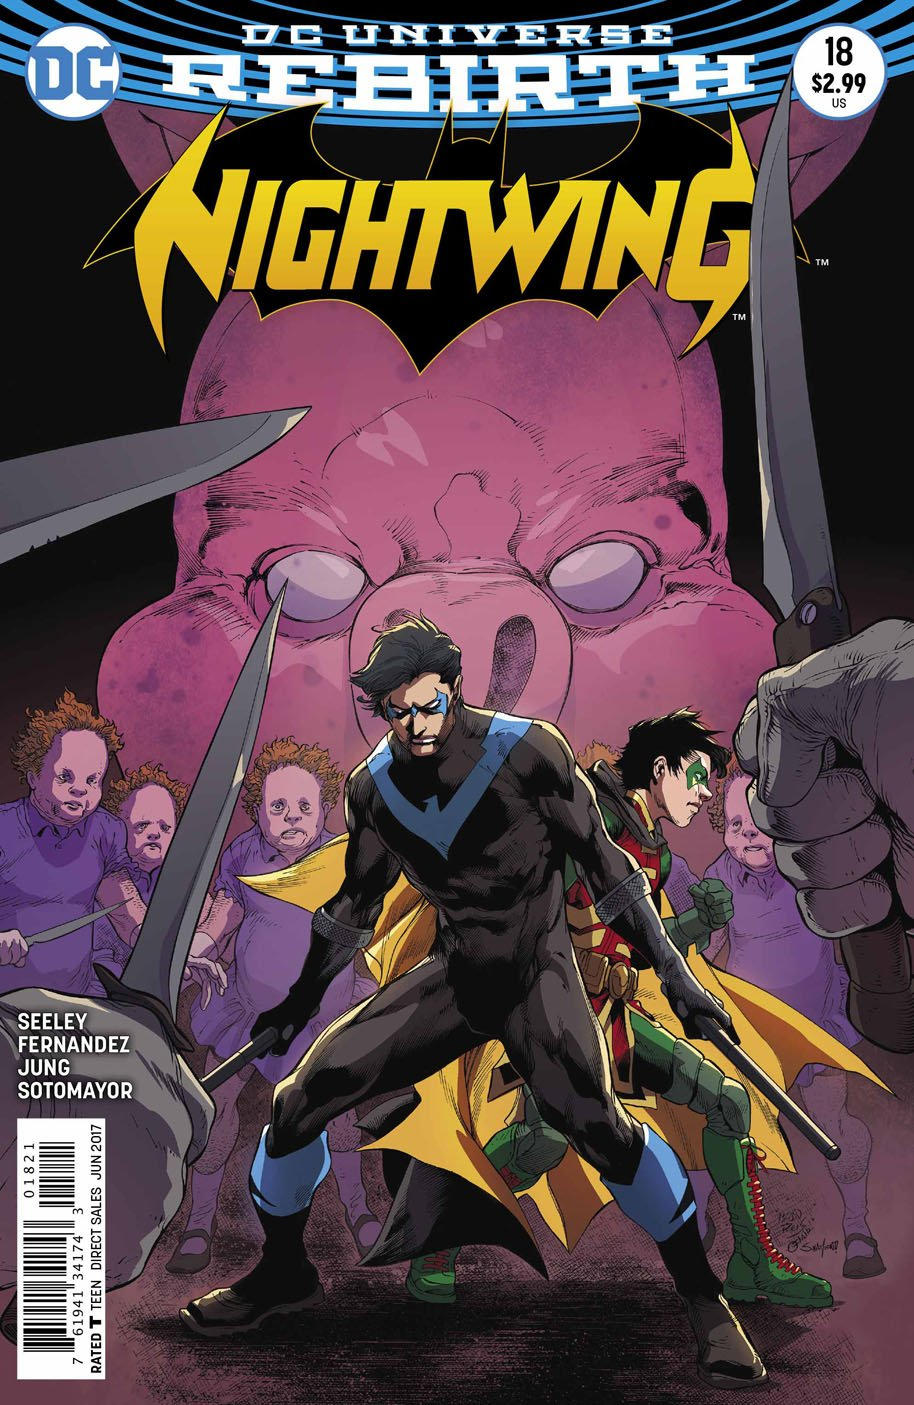 Nightwing 18 open order variant cover